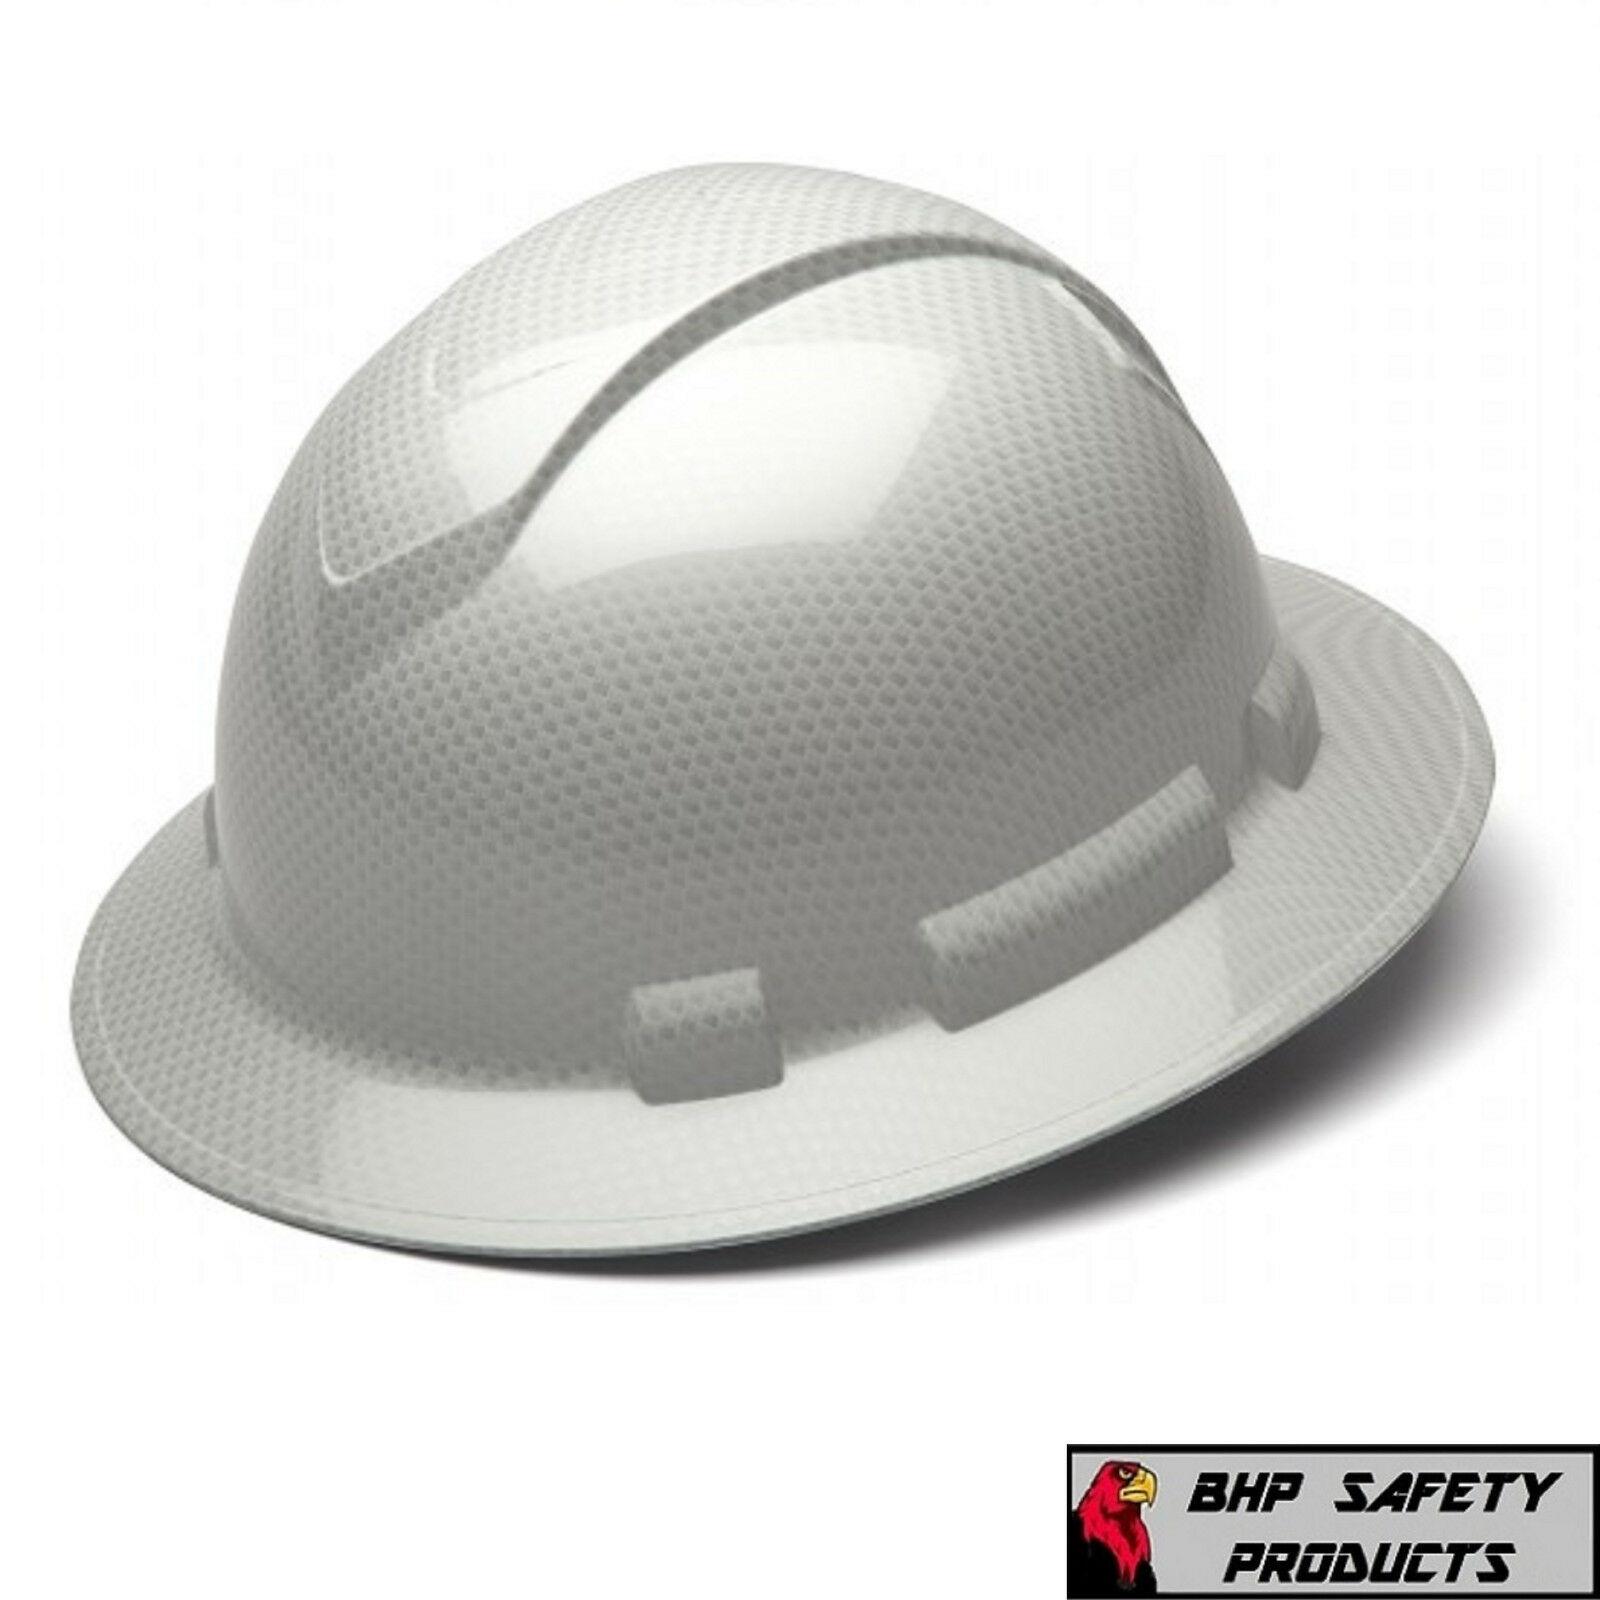 Buy Pyramex Ridgeline Hard Hat Graphite Pattern Shiny White Full ... 6382bd9f8ff9